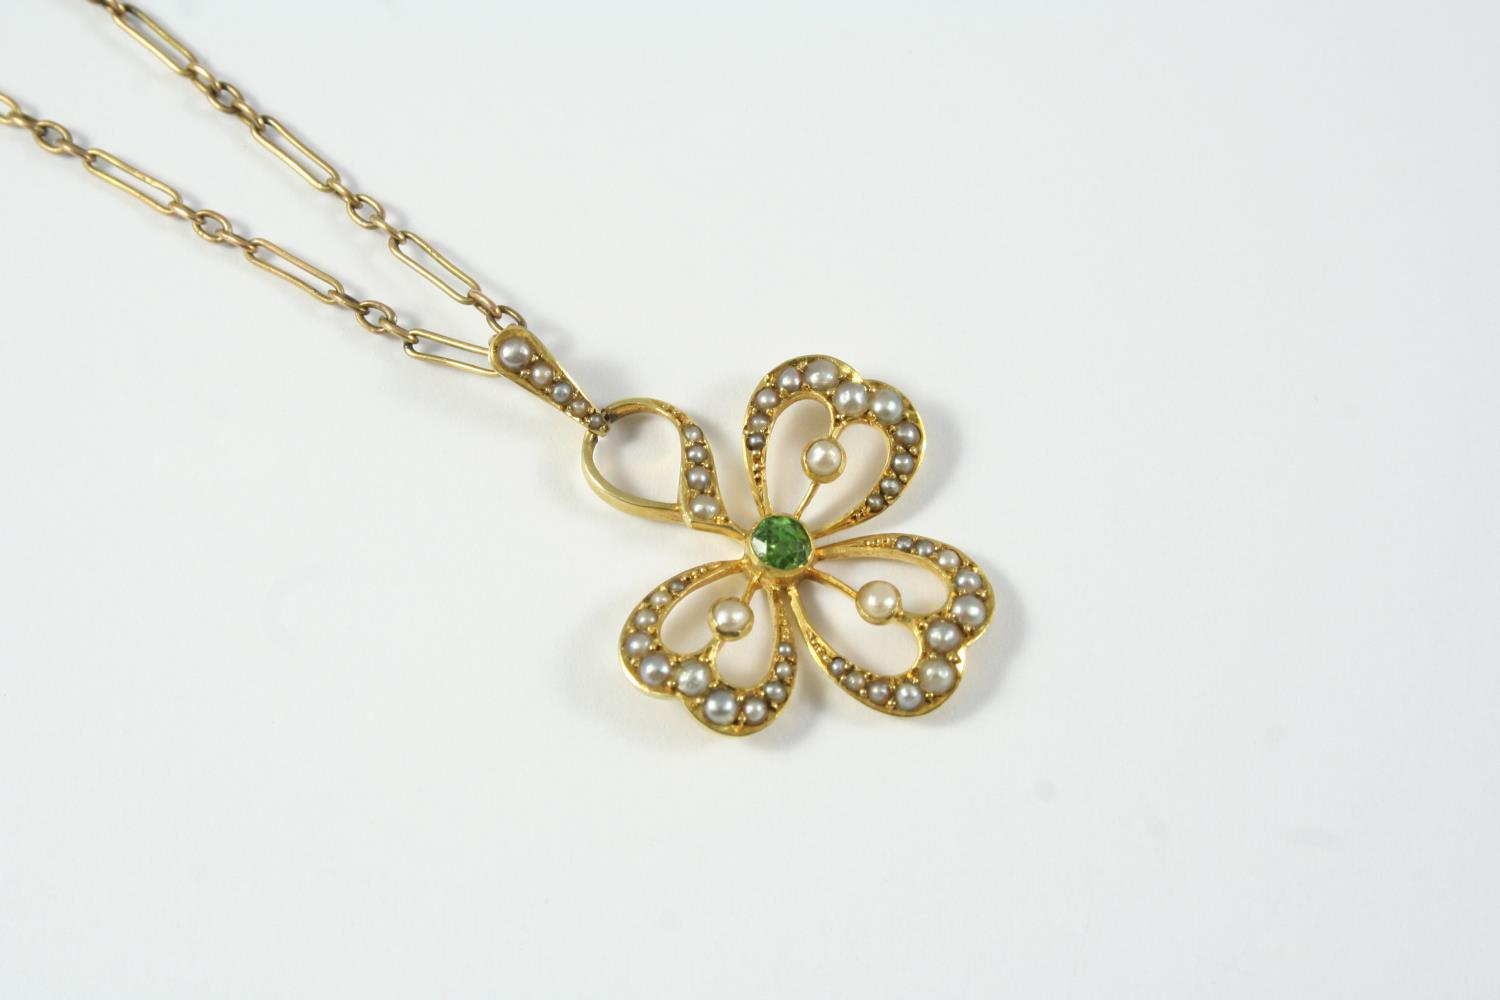 AN EDWARDIAN PERIDOT AND SEED PEARL PENDANT the openwork three leaf clover mount is centred with a